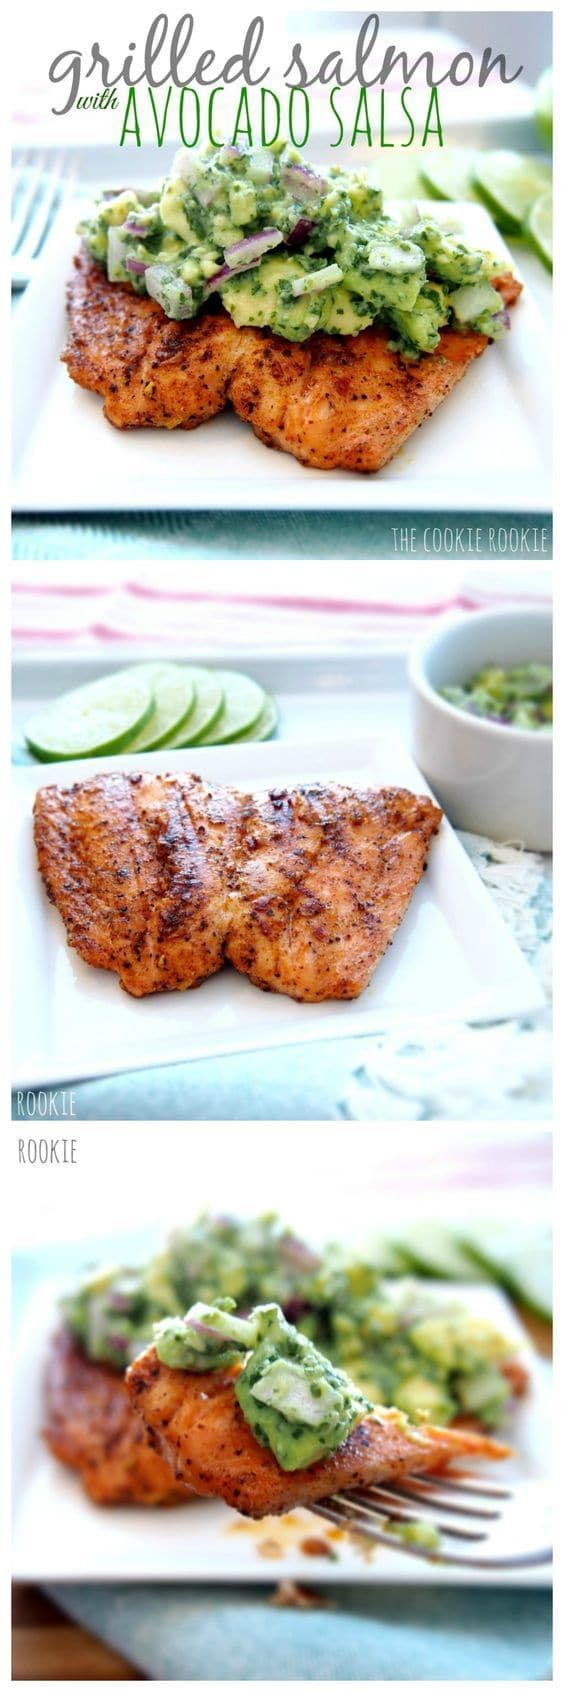 Whole30 approved! This is the best Whole30 recipe out there! Whole30 Grilled salmon is delicious, healthy, simple, easy. Whole 30 Grilled Salmon recipe. via @beckygallhardin